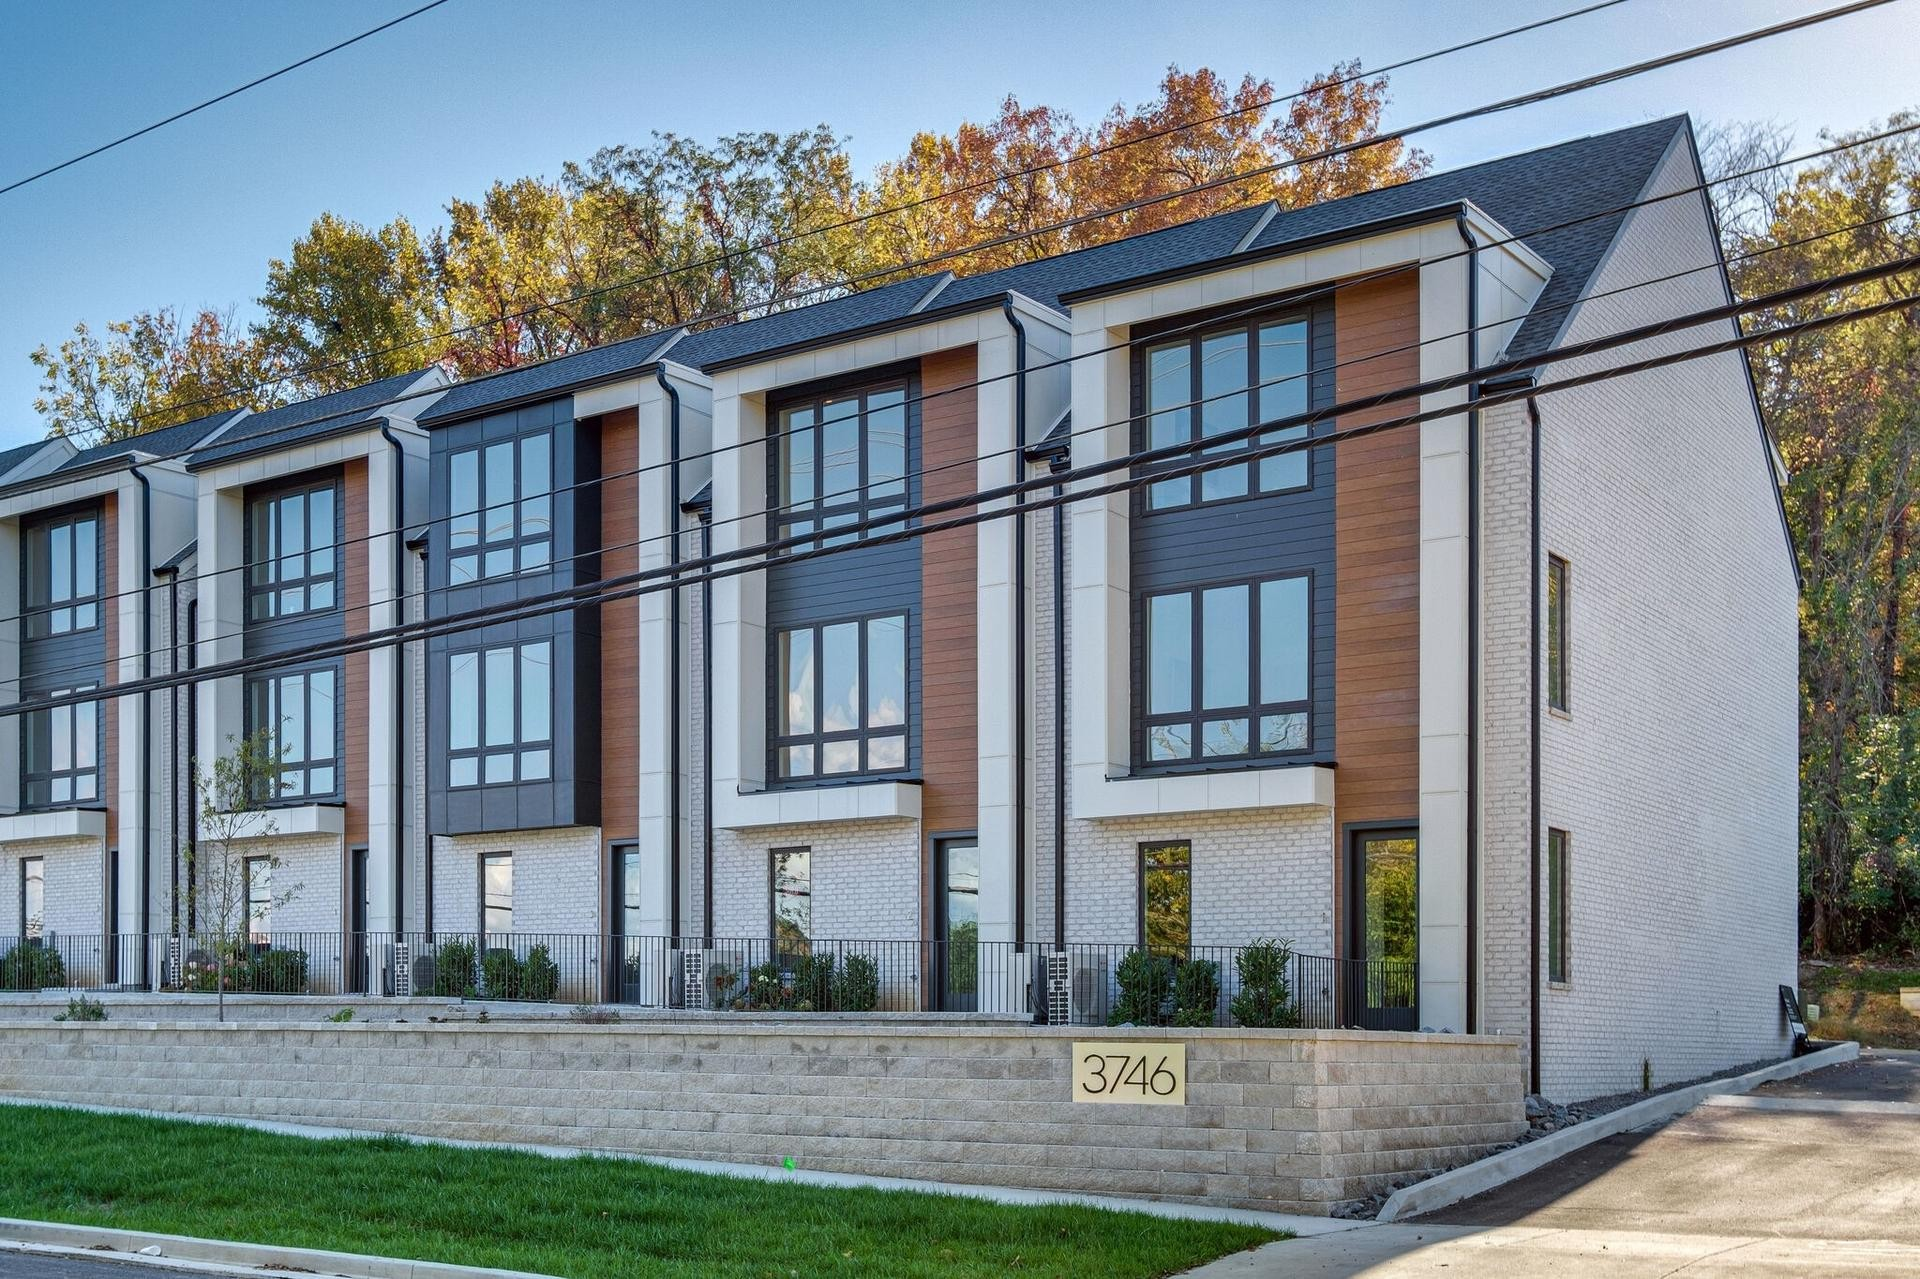 Sold Fully furnished - Zoned MUL (perfect for Non Owner Occupant Short Term Rentals  (airbnb) Huge windows over looking a beautiful police precinct, library and park. 6 minutes from the airport and 12 minutes to downtown! High end finishes and all kitchen appliances.